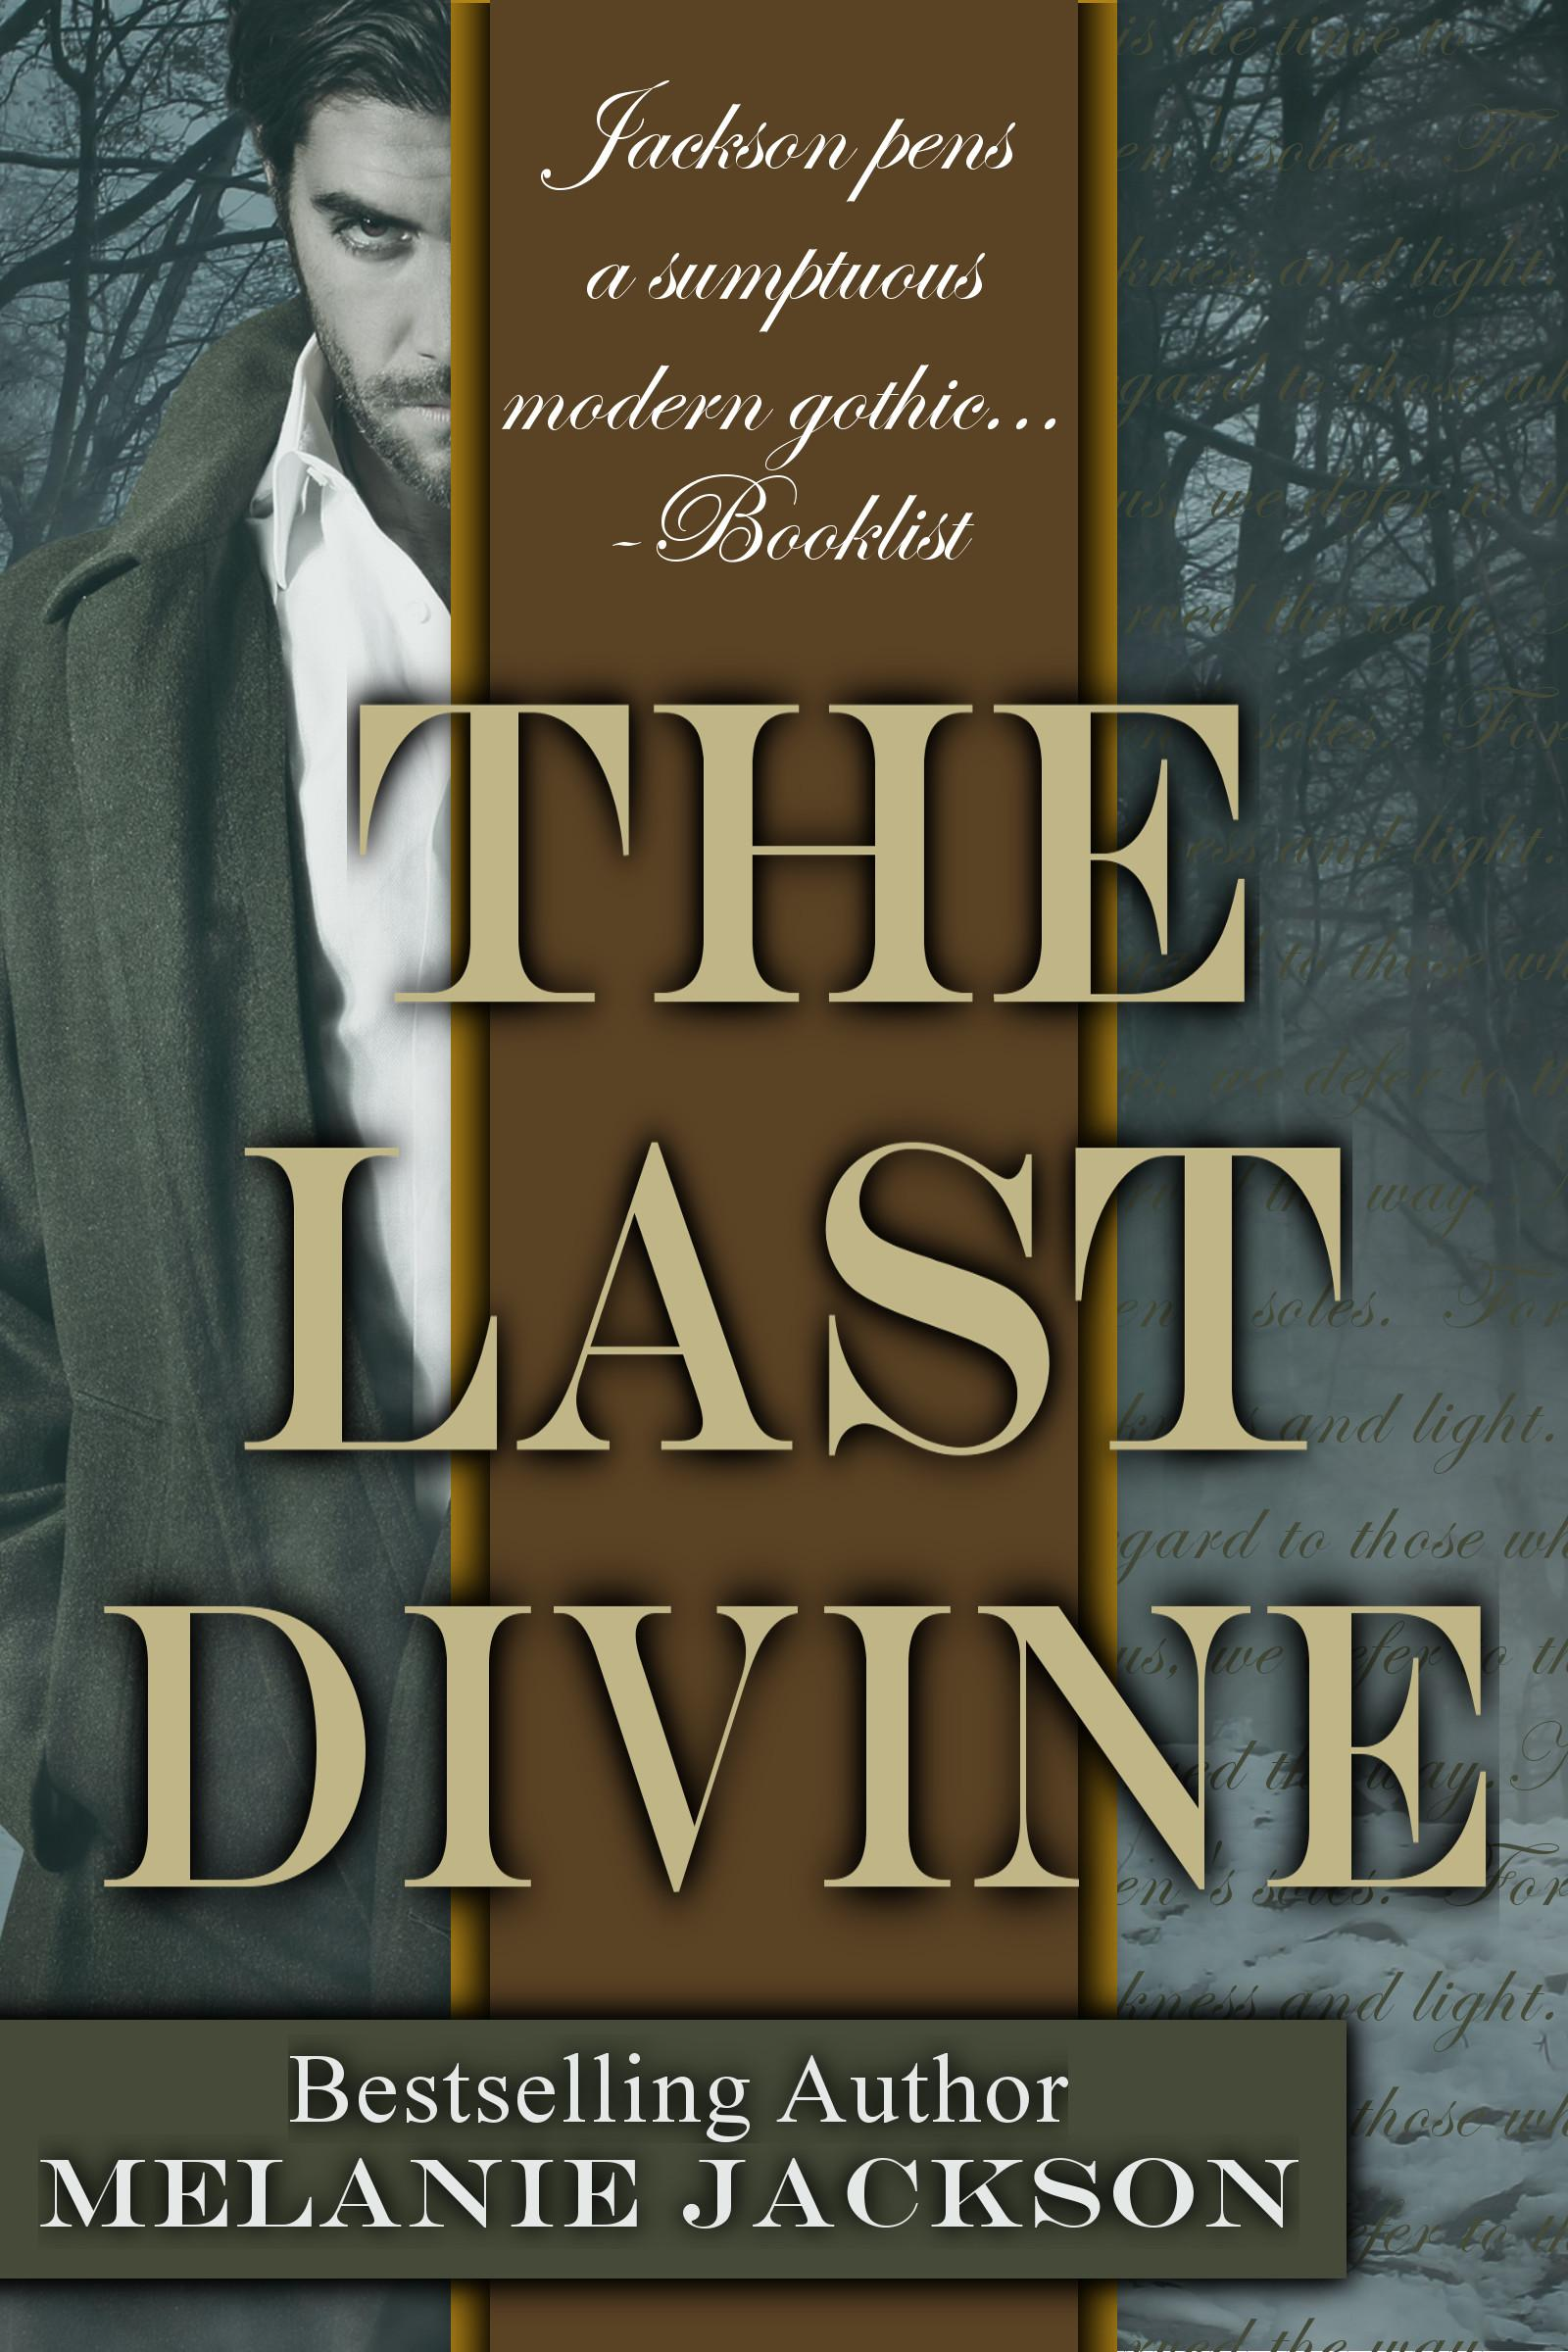 How To Make A Book Cover Using Gimp : Gimp for beginners recreate quot the last divine book